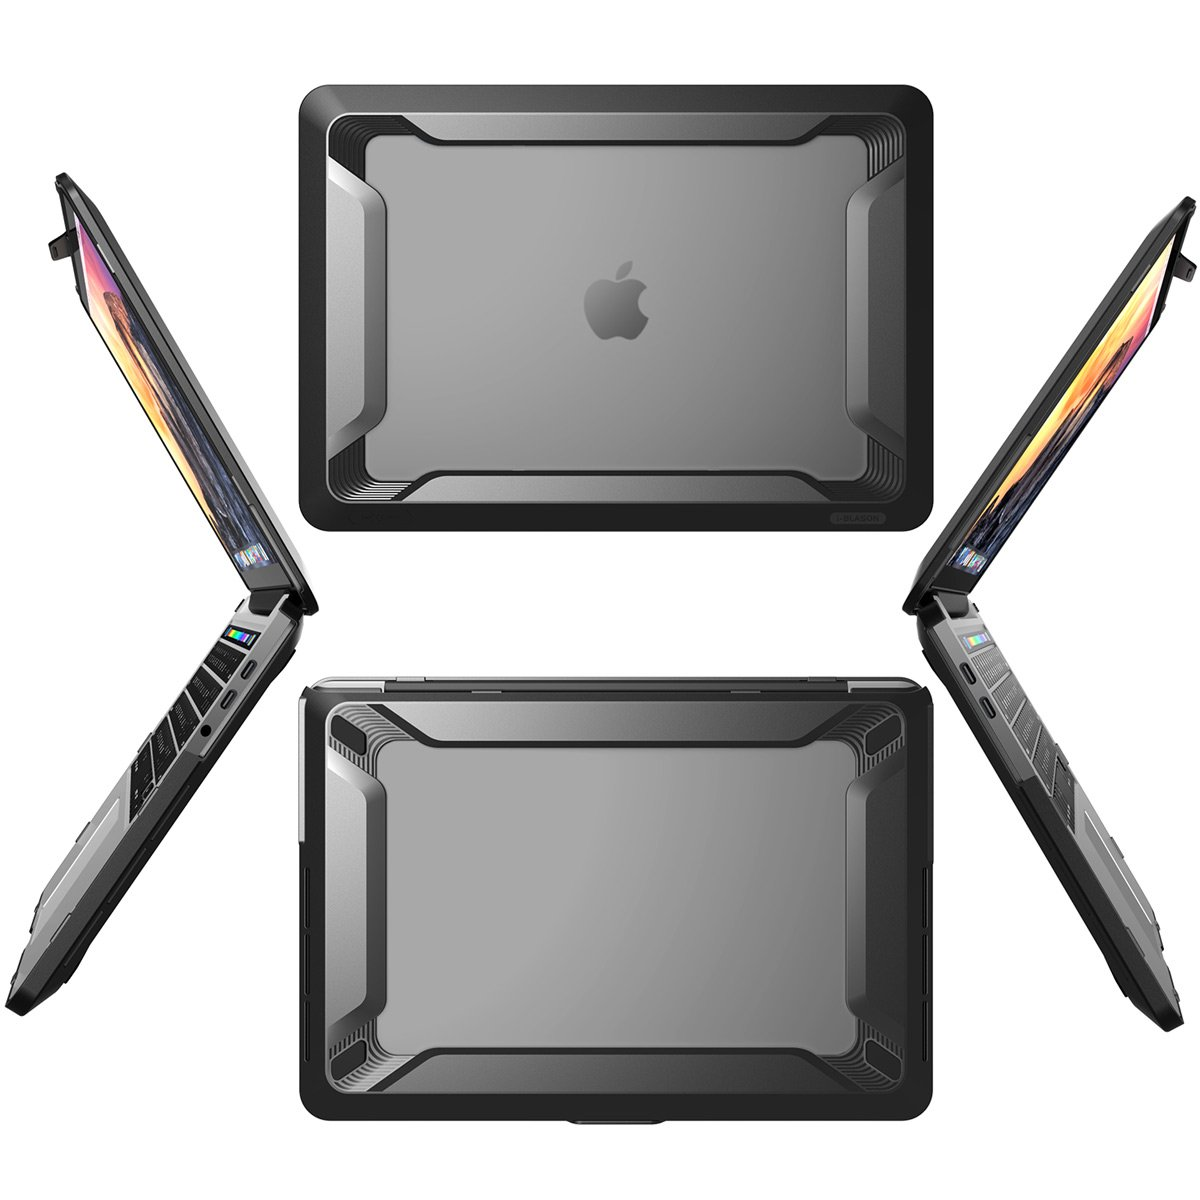 MacBook Pro 13 Case 2018 2017 2016 Release A1989/A1706/A1708, i-Blason [Heavy Duty] [Dual Layer] Cover with TPU Bumper for Apple Macbook Pro 13 inch With or Without Touch Bar and Touch ID (Black) by i-Blason (Image #6)